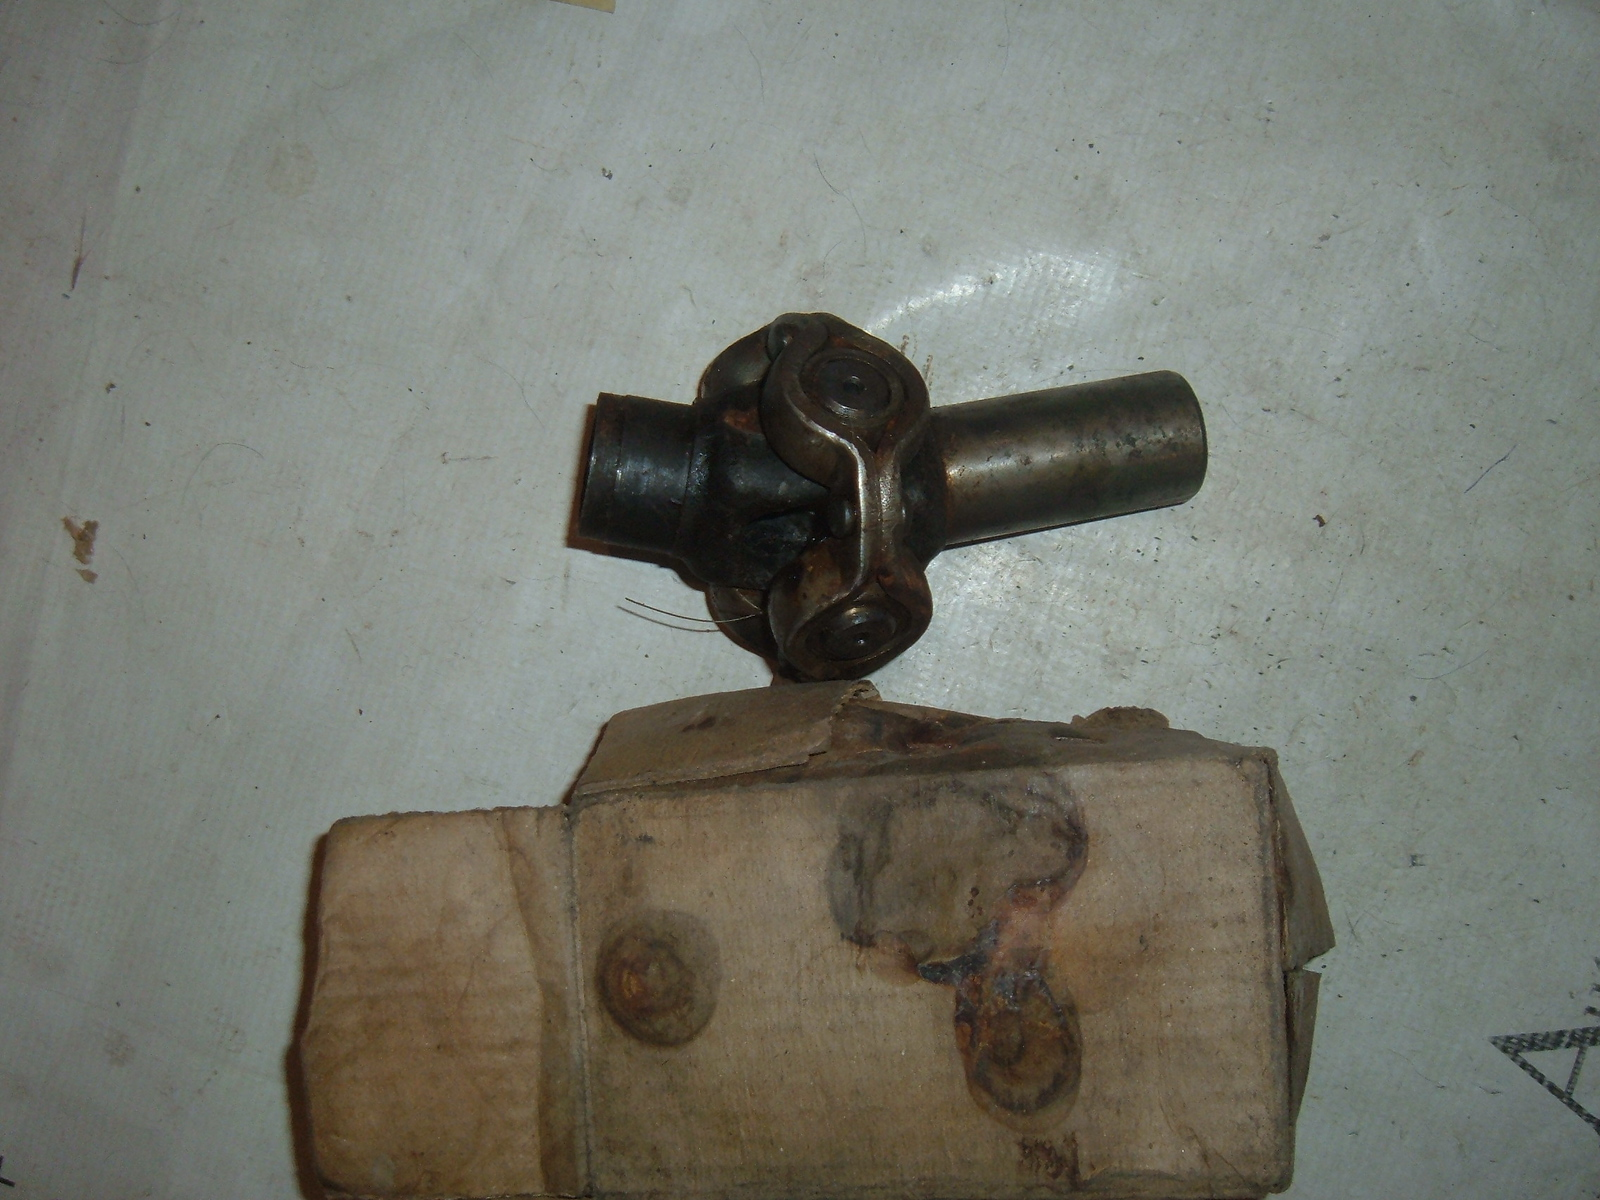 1933 34 35 36 chevrolet universal joint nos gm 601889 (z 601889)